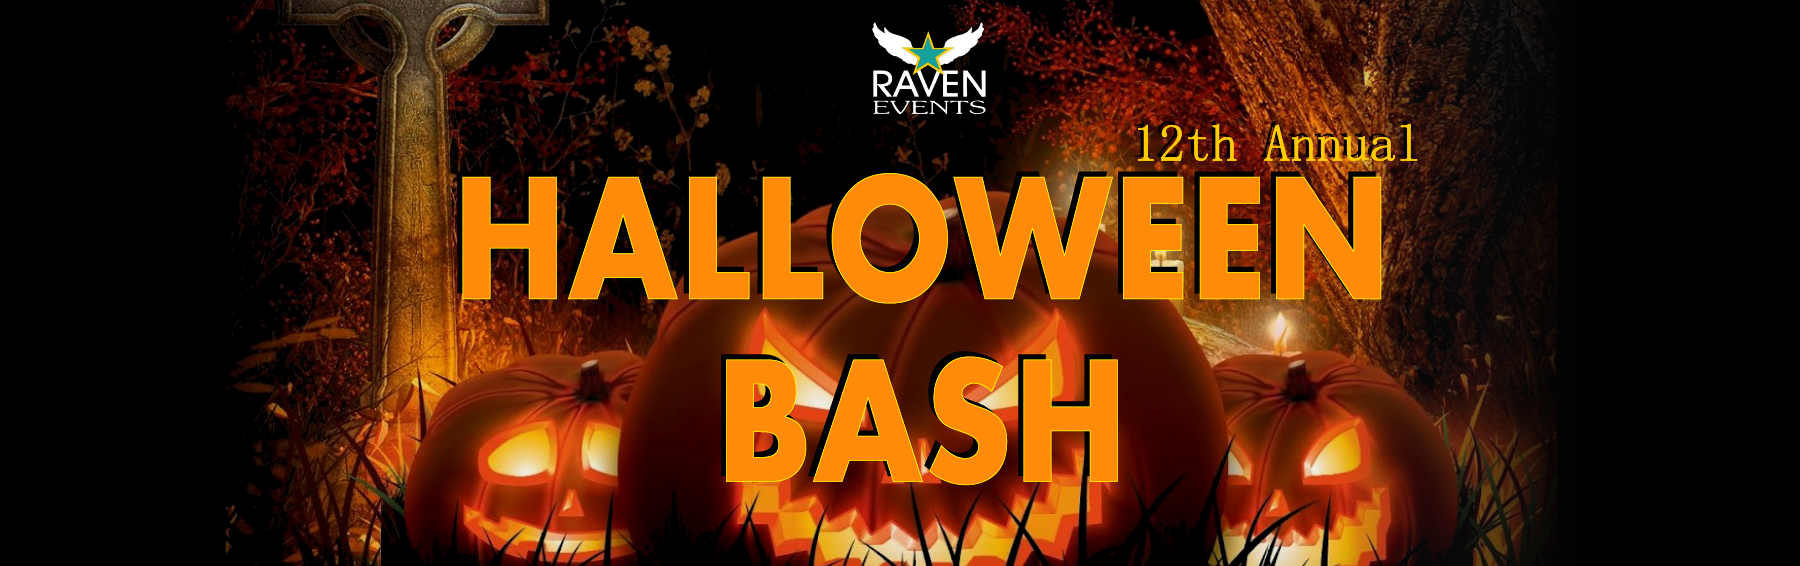 Raven's 12th Annual Halloween Bash